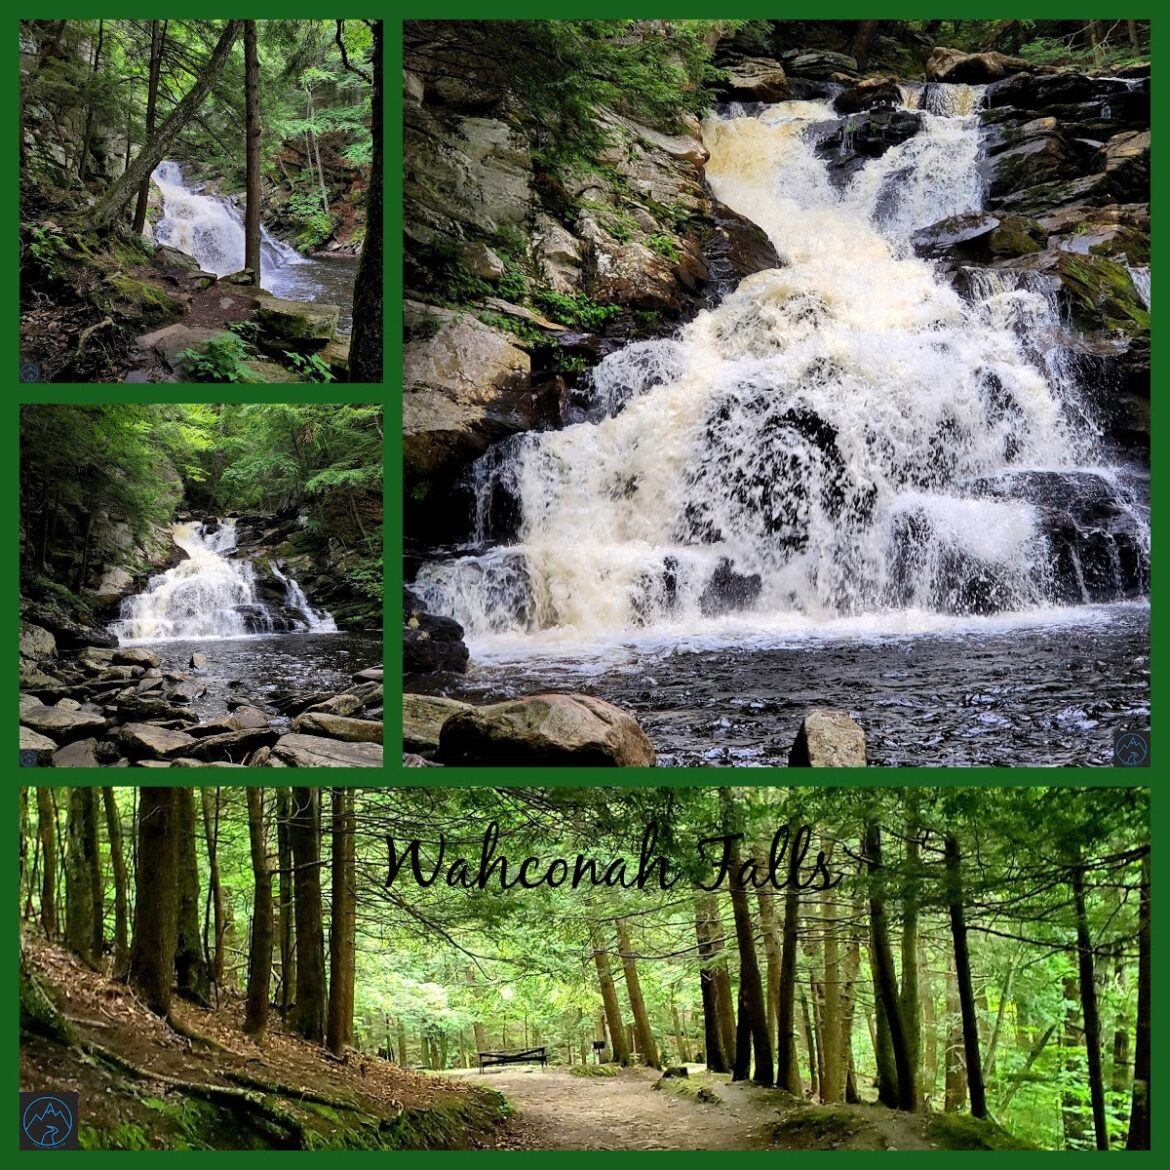 Wahconah Falls State Park-A Beautiful State Park and Waterfall in Massachusetts